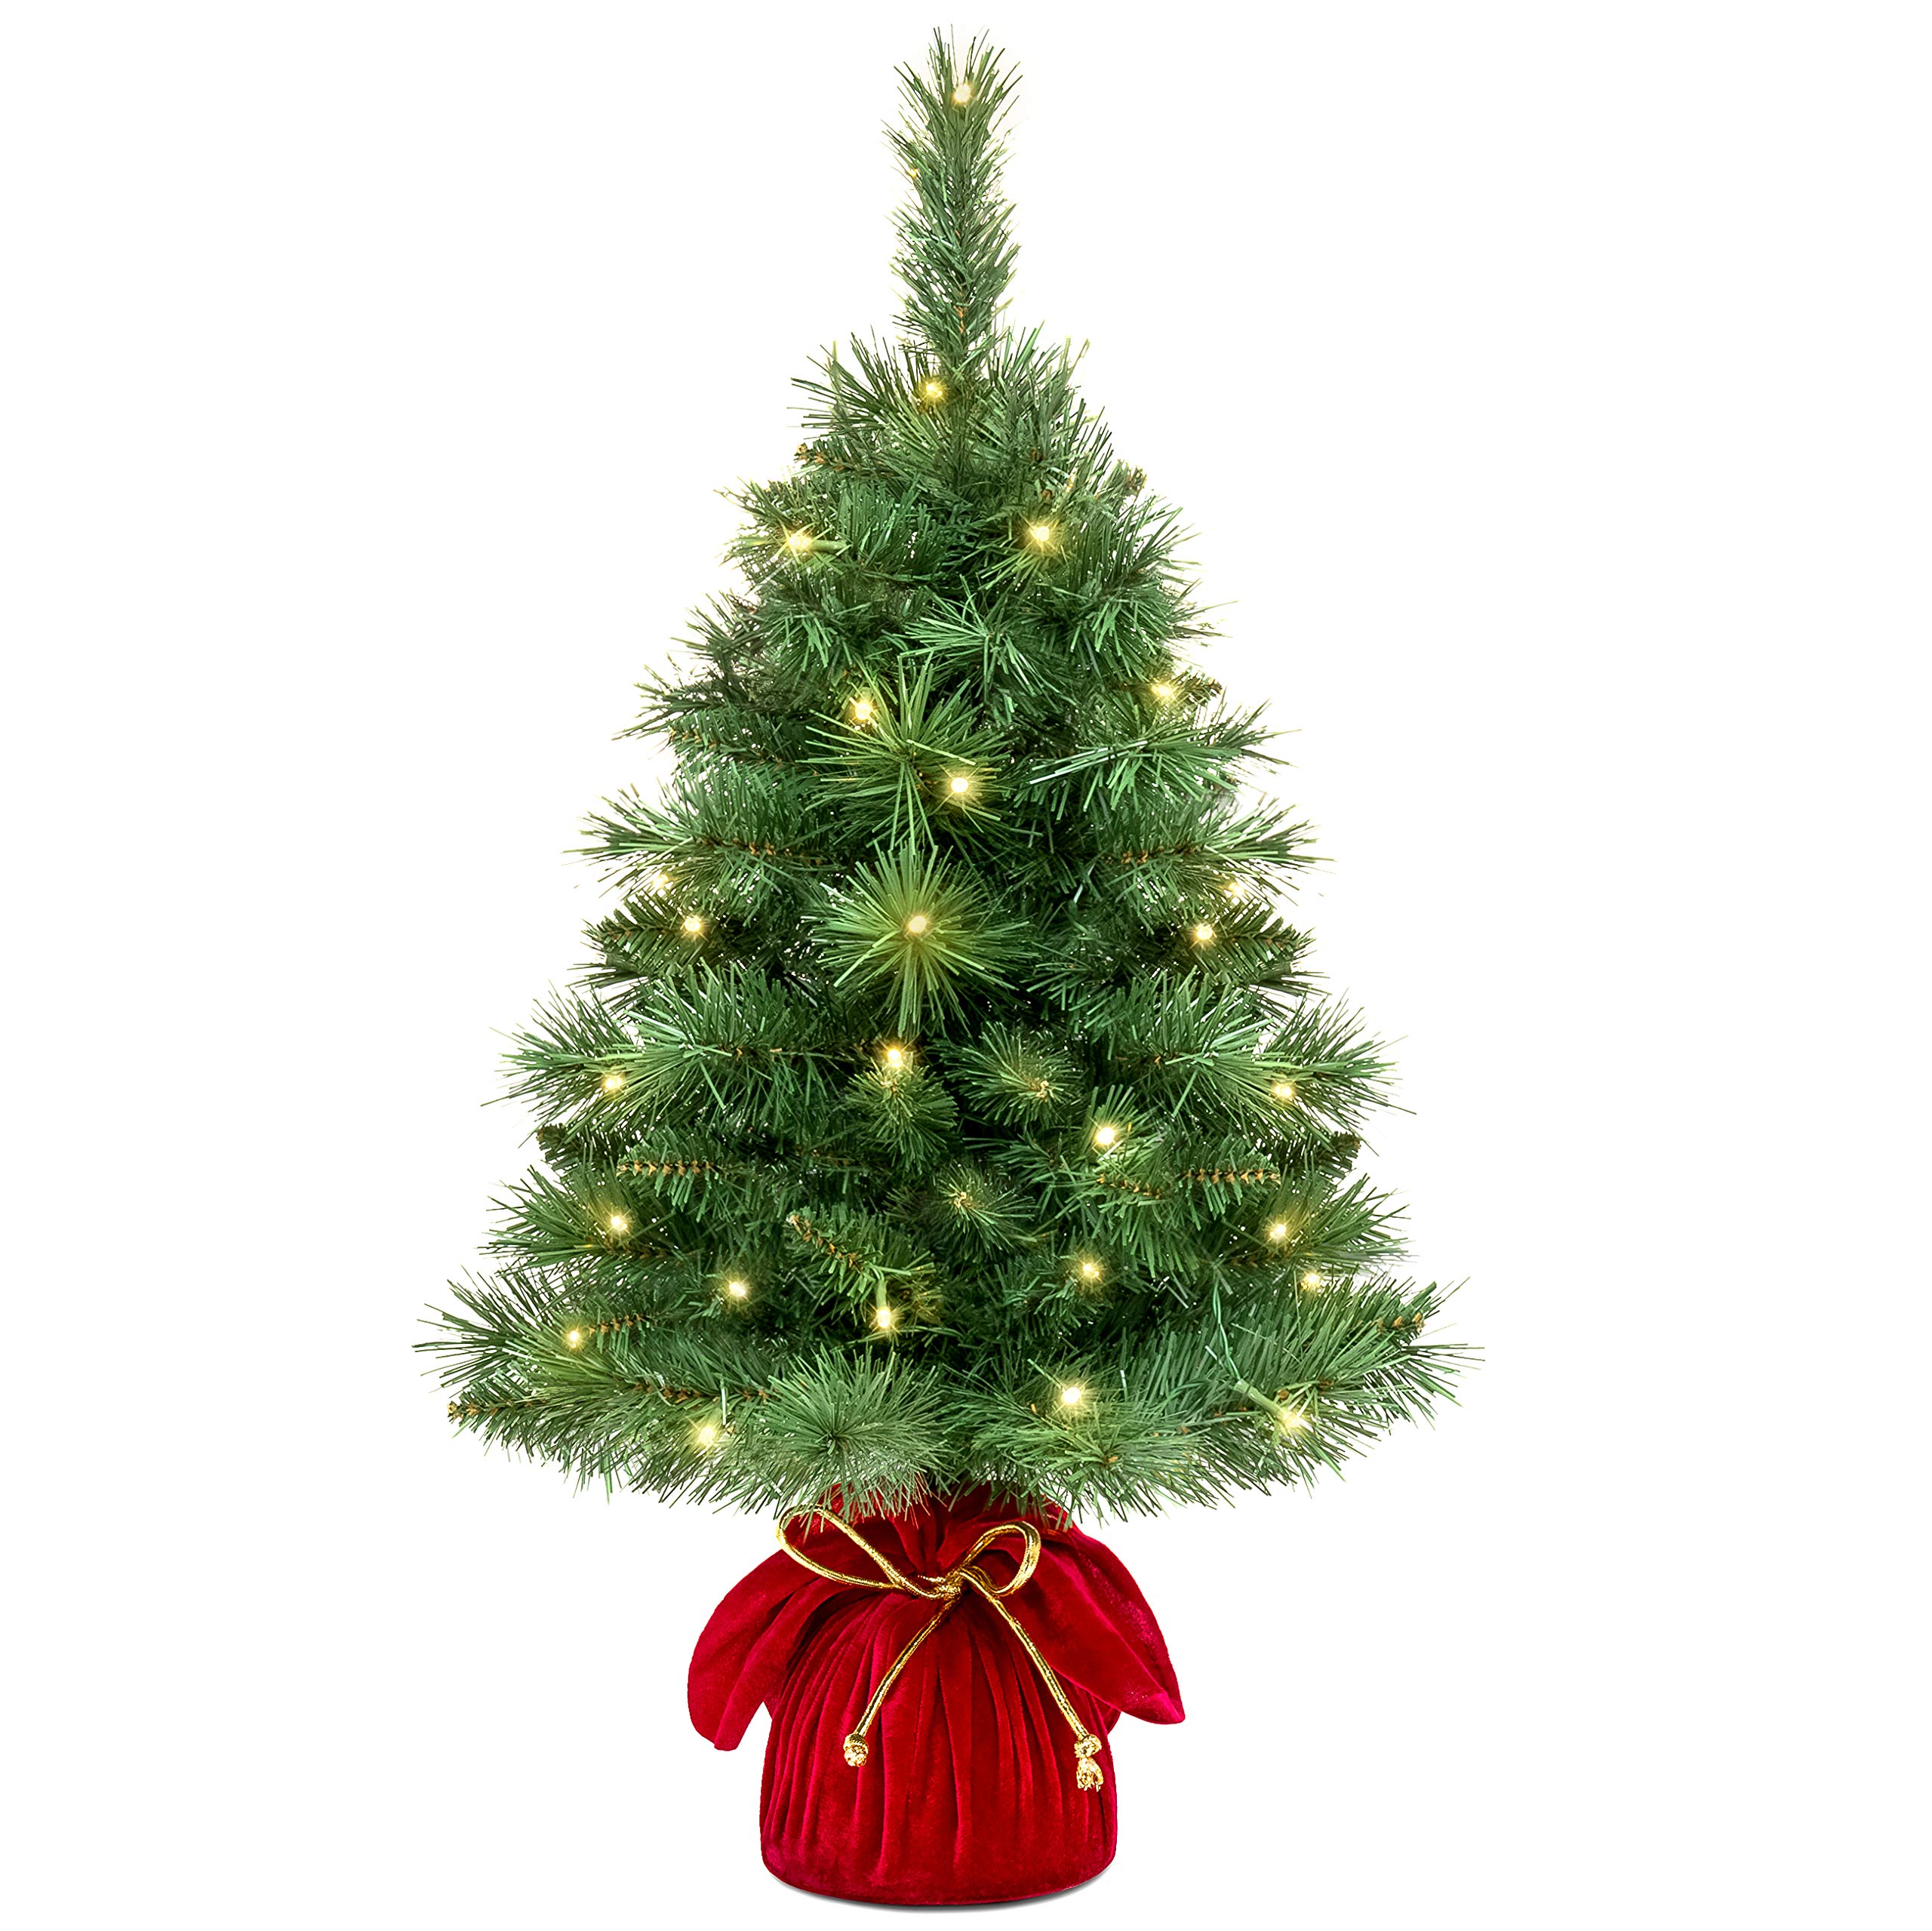 Best Choice Products 26in Pre-Lit Tabletop Fir Artifical Christmas Tree Decor w/ 35 UL Certified LED Lights, Extra Bulbs - Green